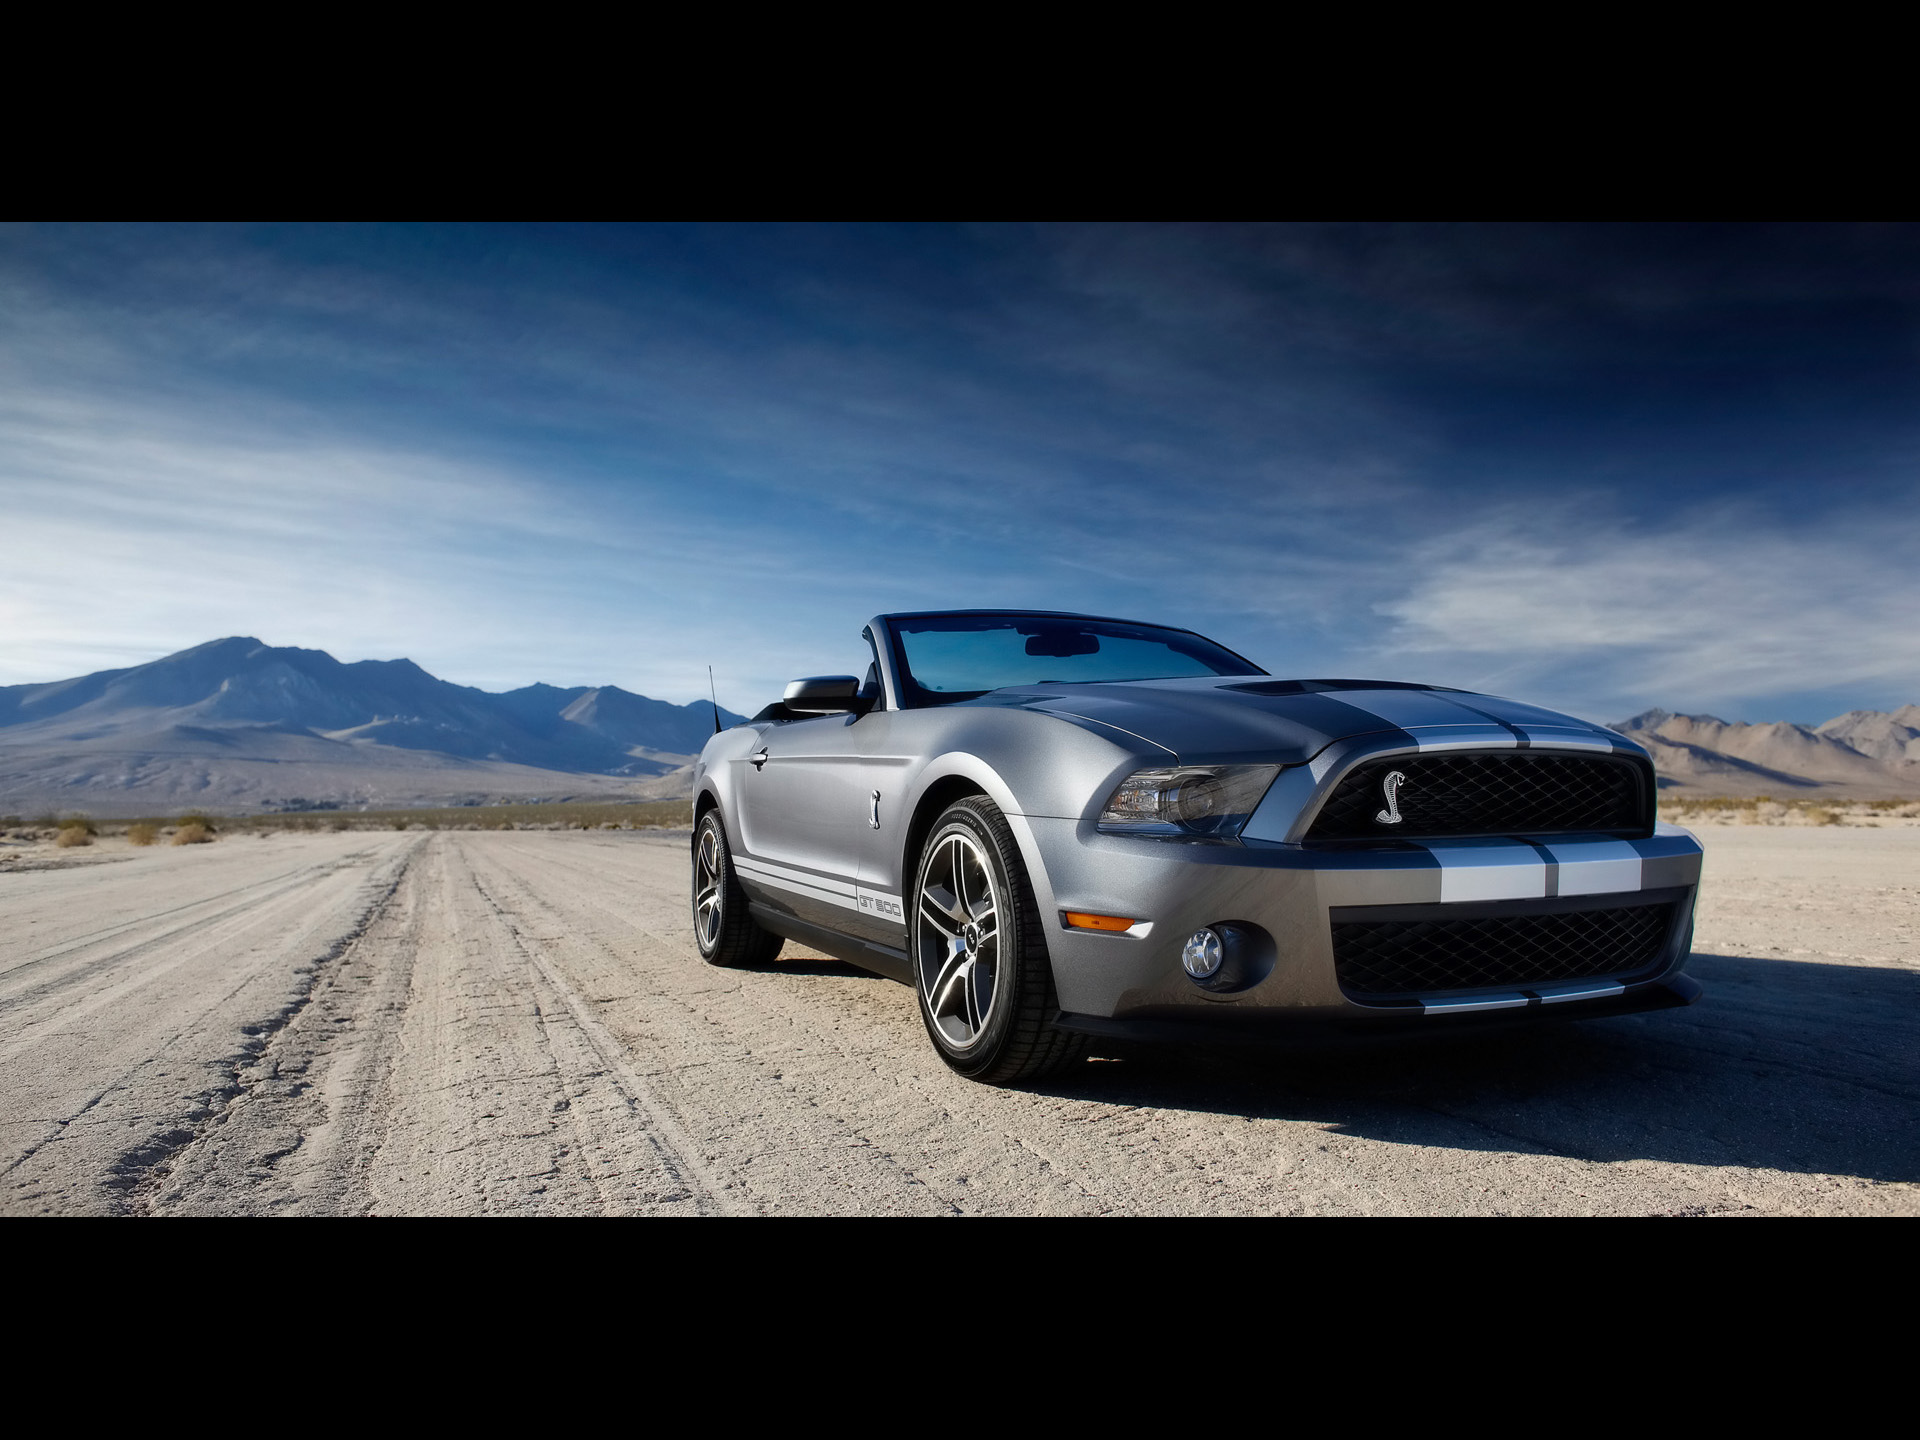 Ford Shelby GT500 Front 3 wallpapers | Ford Shelby GT500 ...